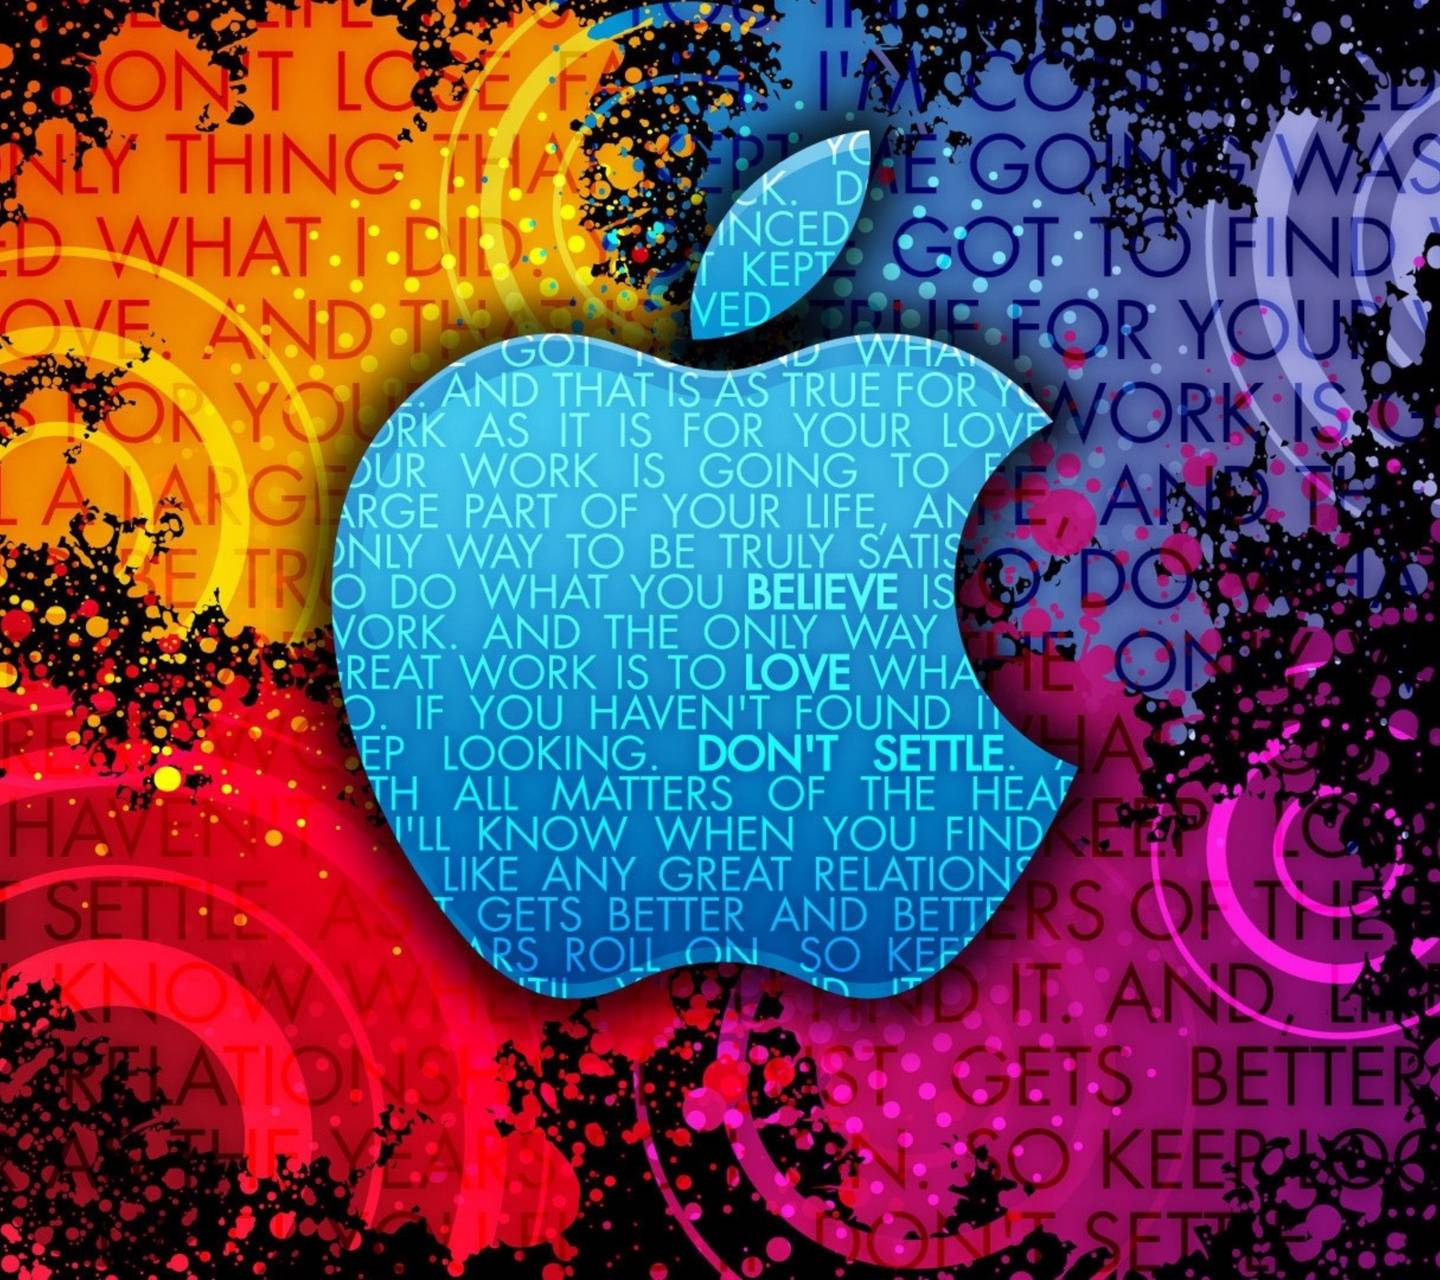 Abstract Apple Logo Wallpaper by JD_Bowers - e4 - Free on ...